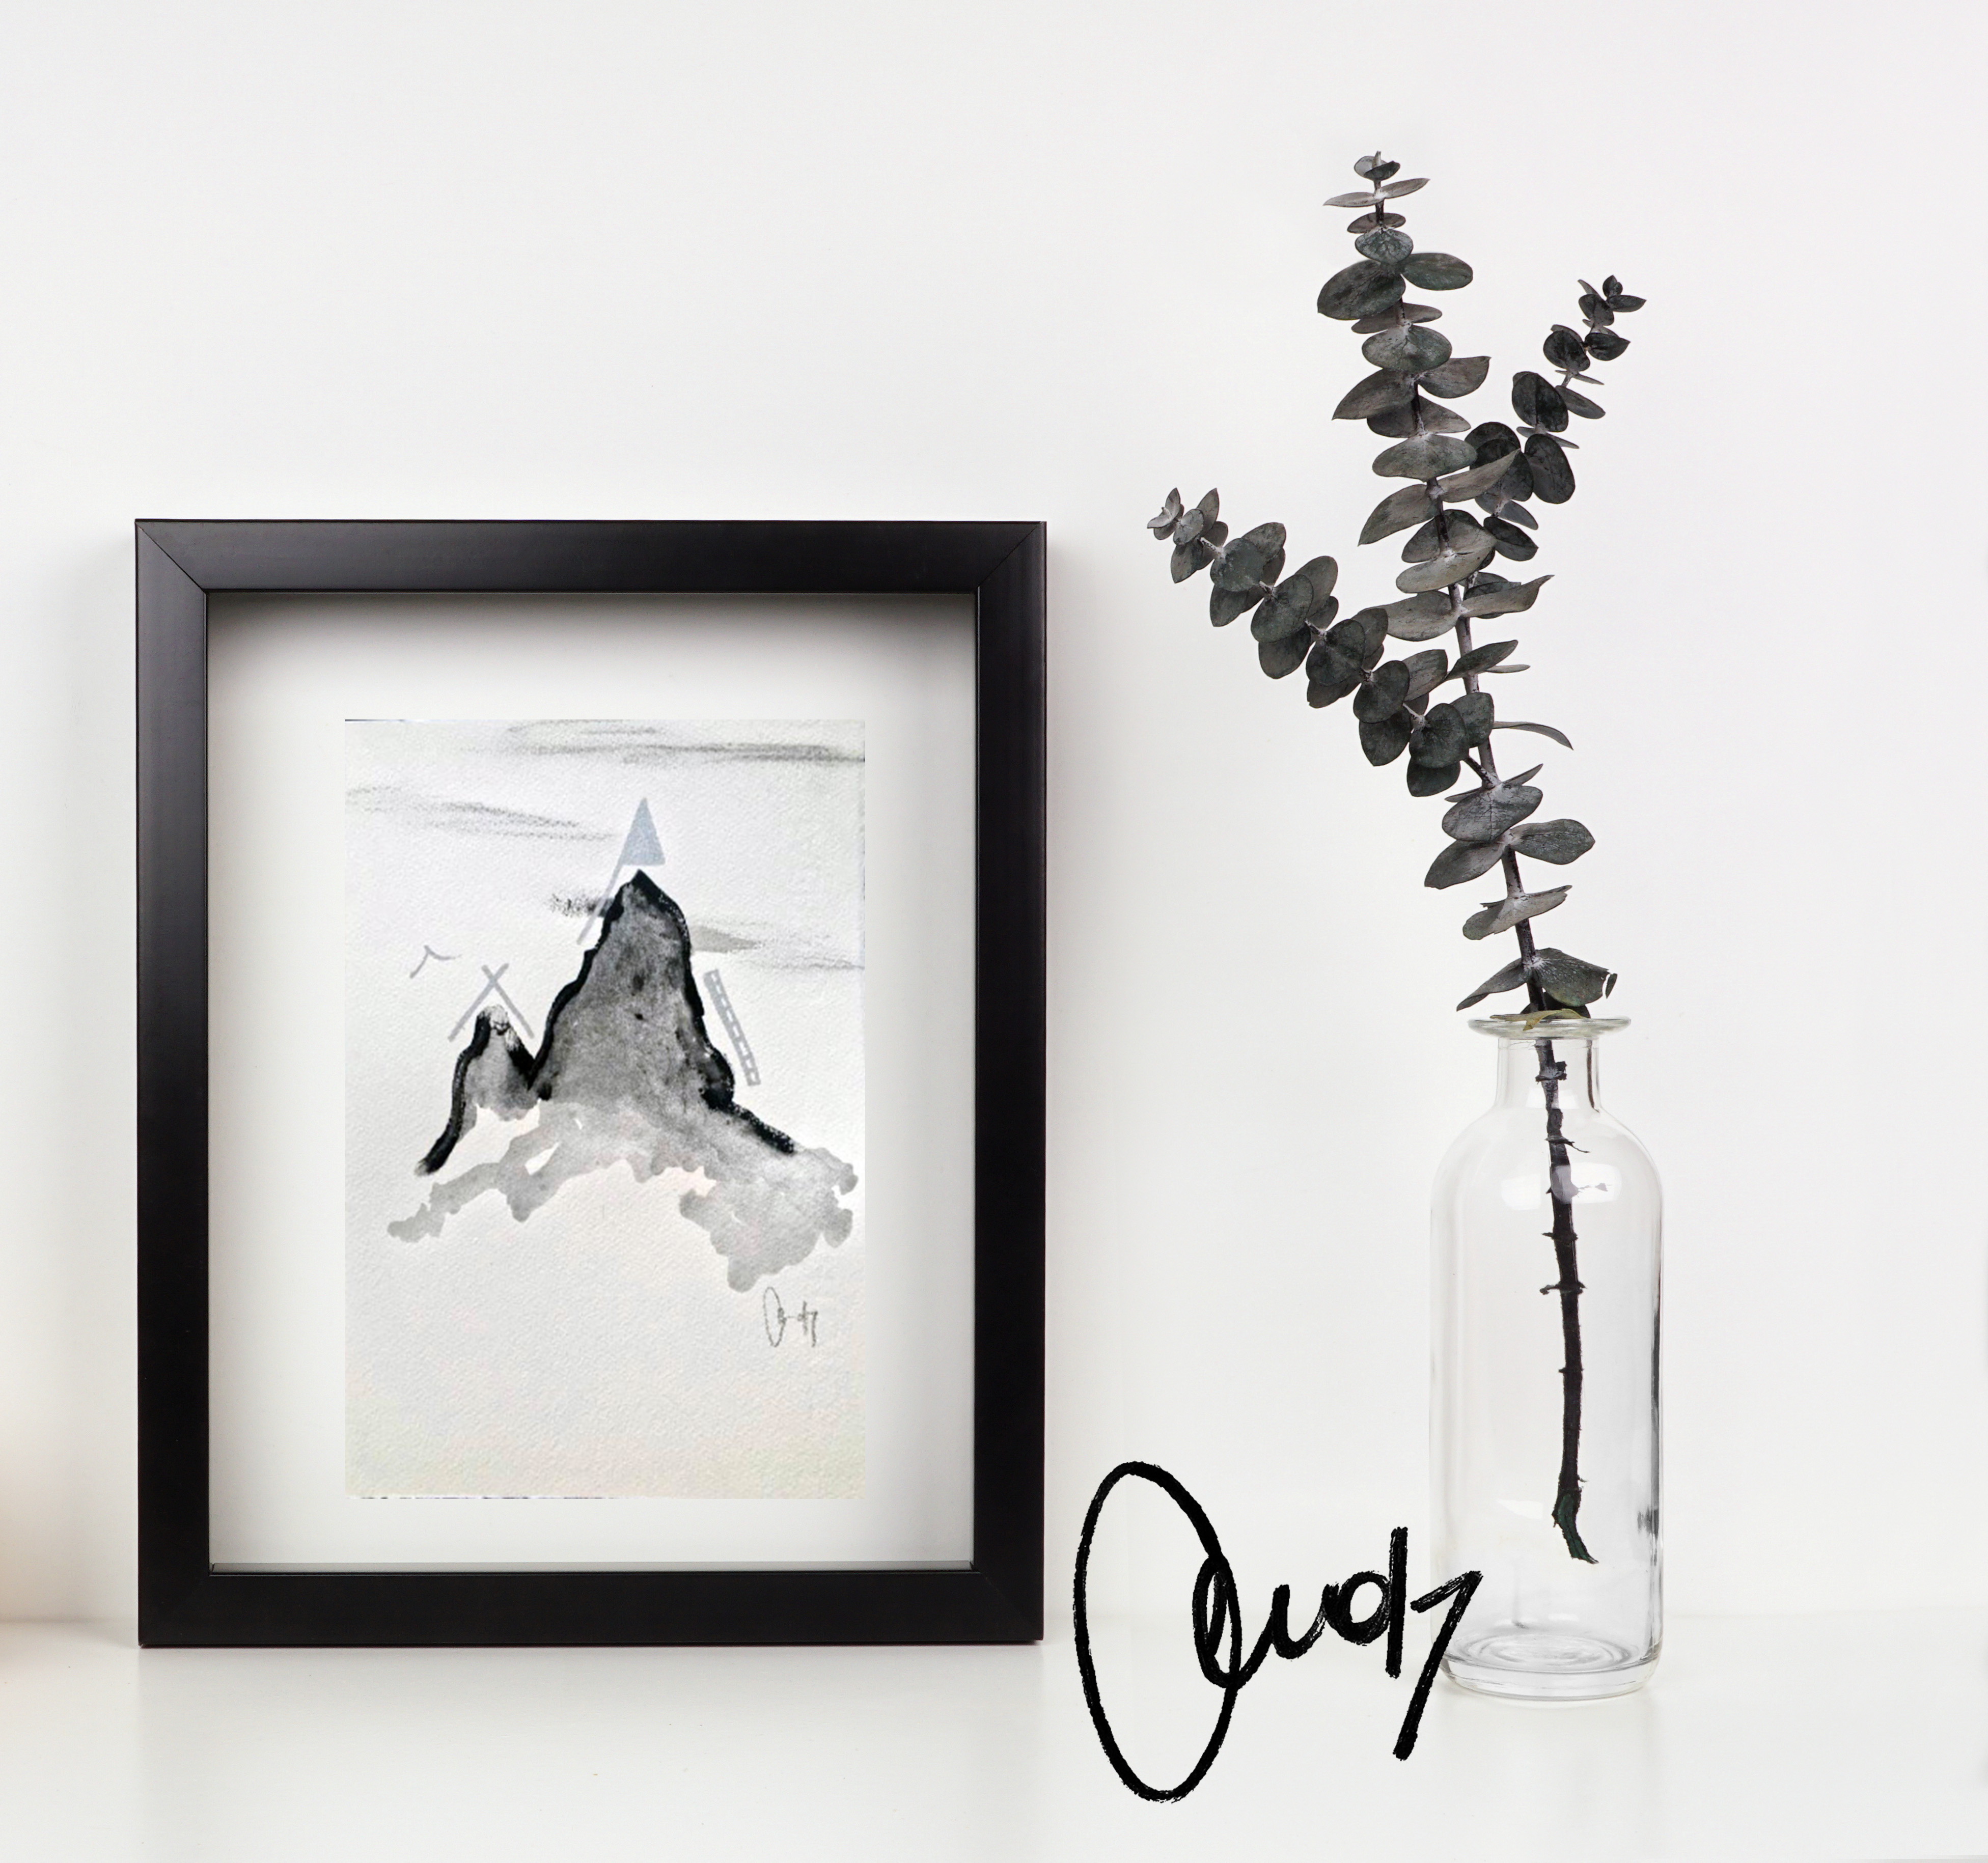 Obstacles - Disponible/Available